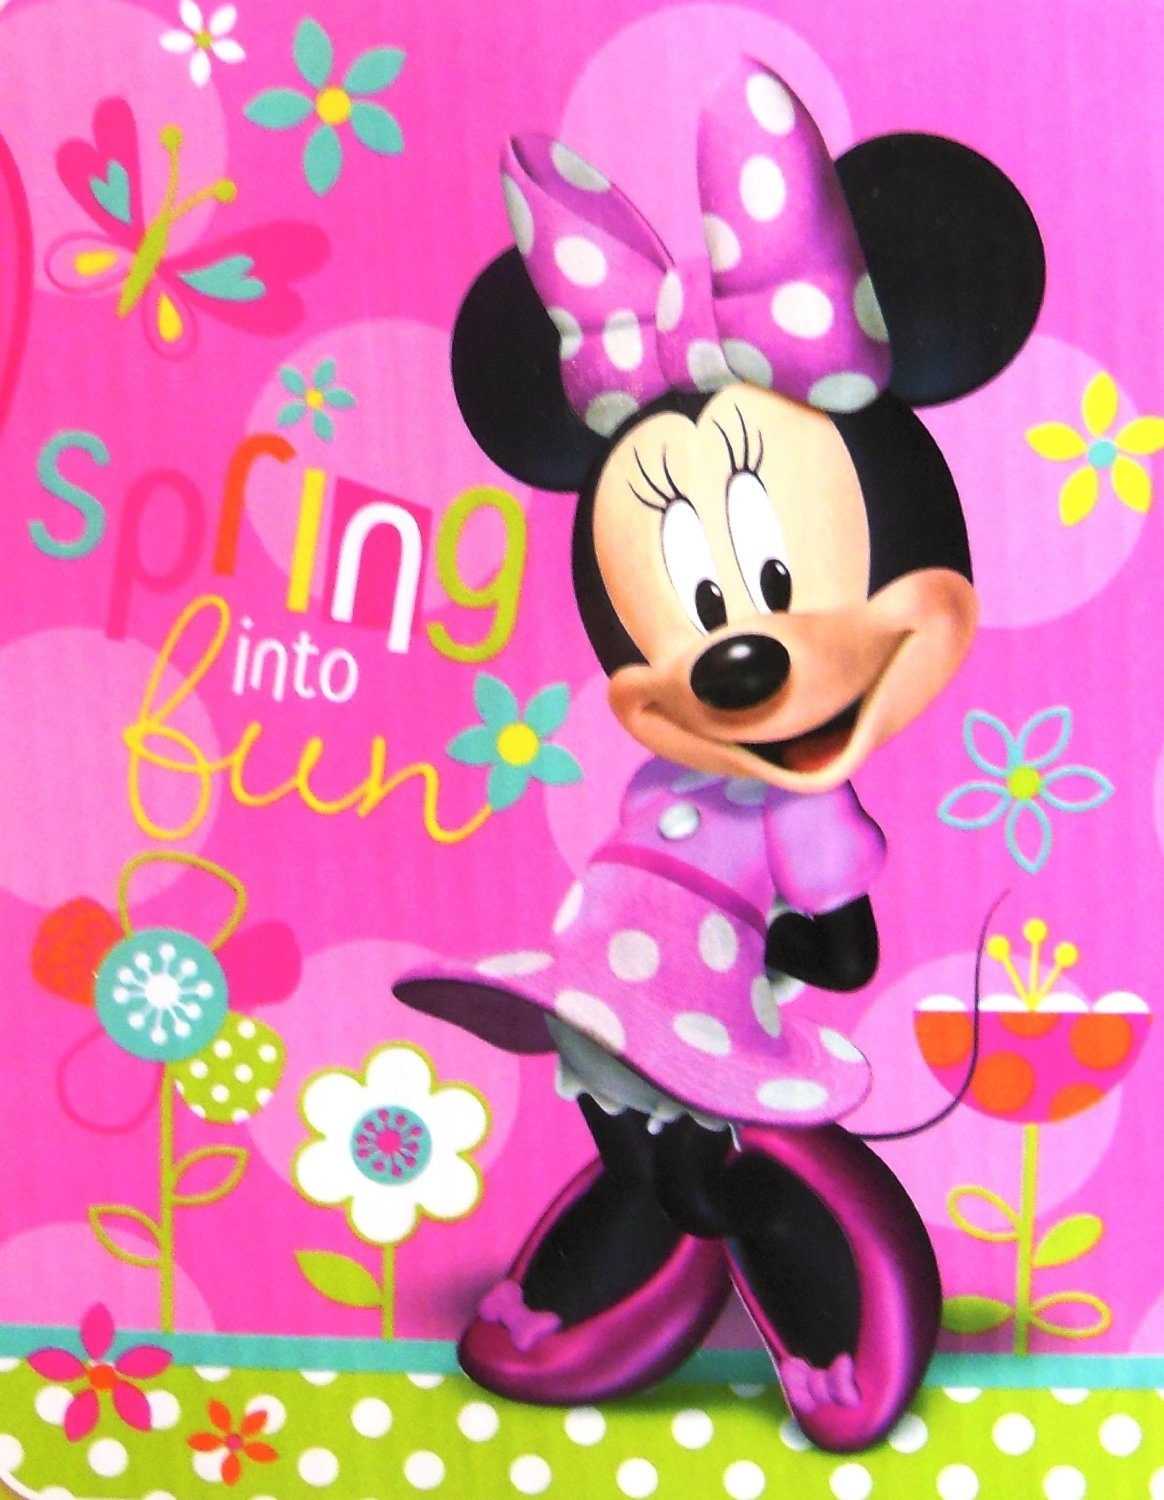 mickey and minnie mouse wallpaper | hd wallpapers | pinterest